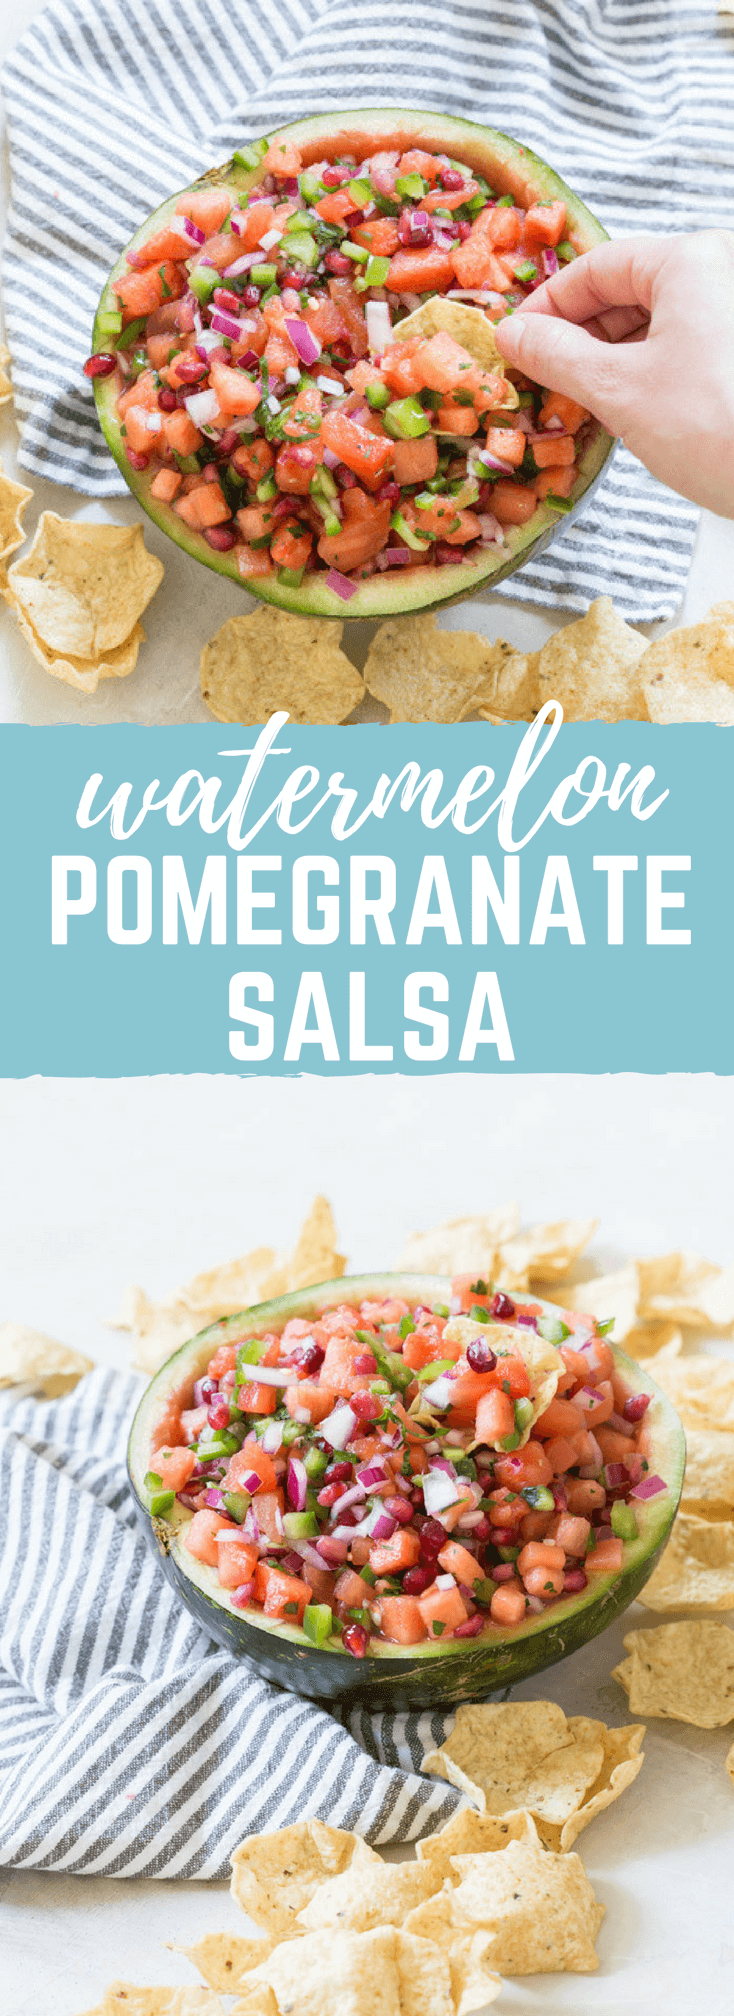 If you want to know how to eat watermelon, THIS IS IT >>> Watermelon Pomegranate Salsa. And I cannot get over the presentation of serving this salsa straight in the watermelon rind! Now that's how to do salsa for a party this holiday season.